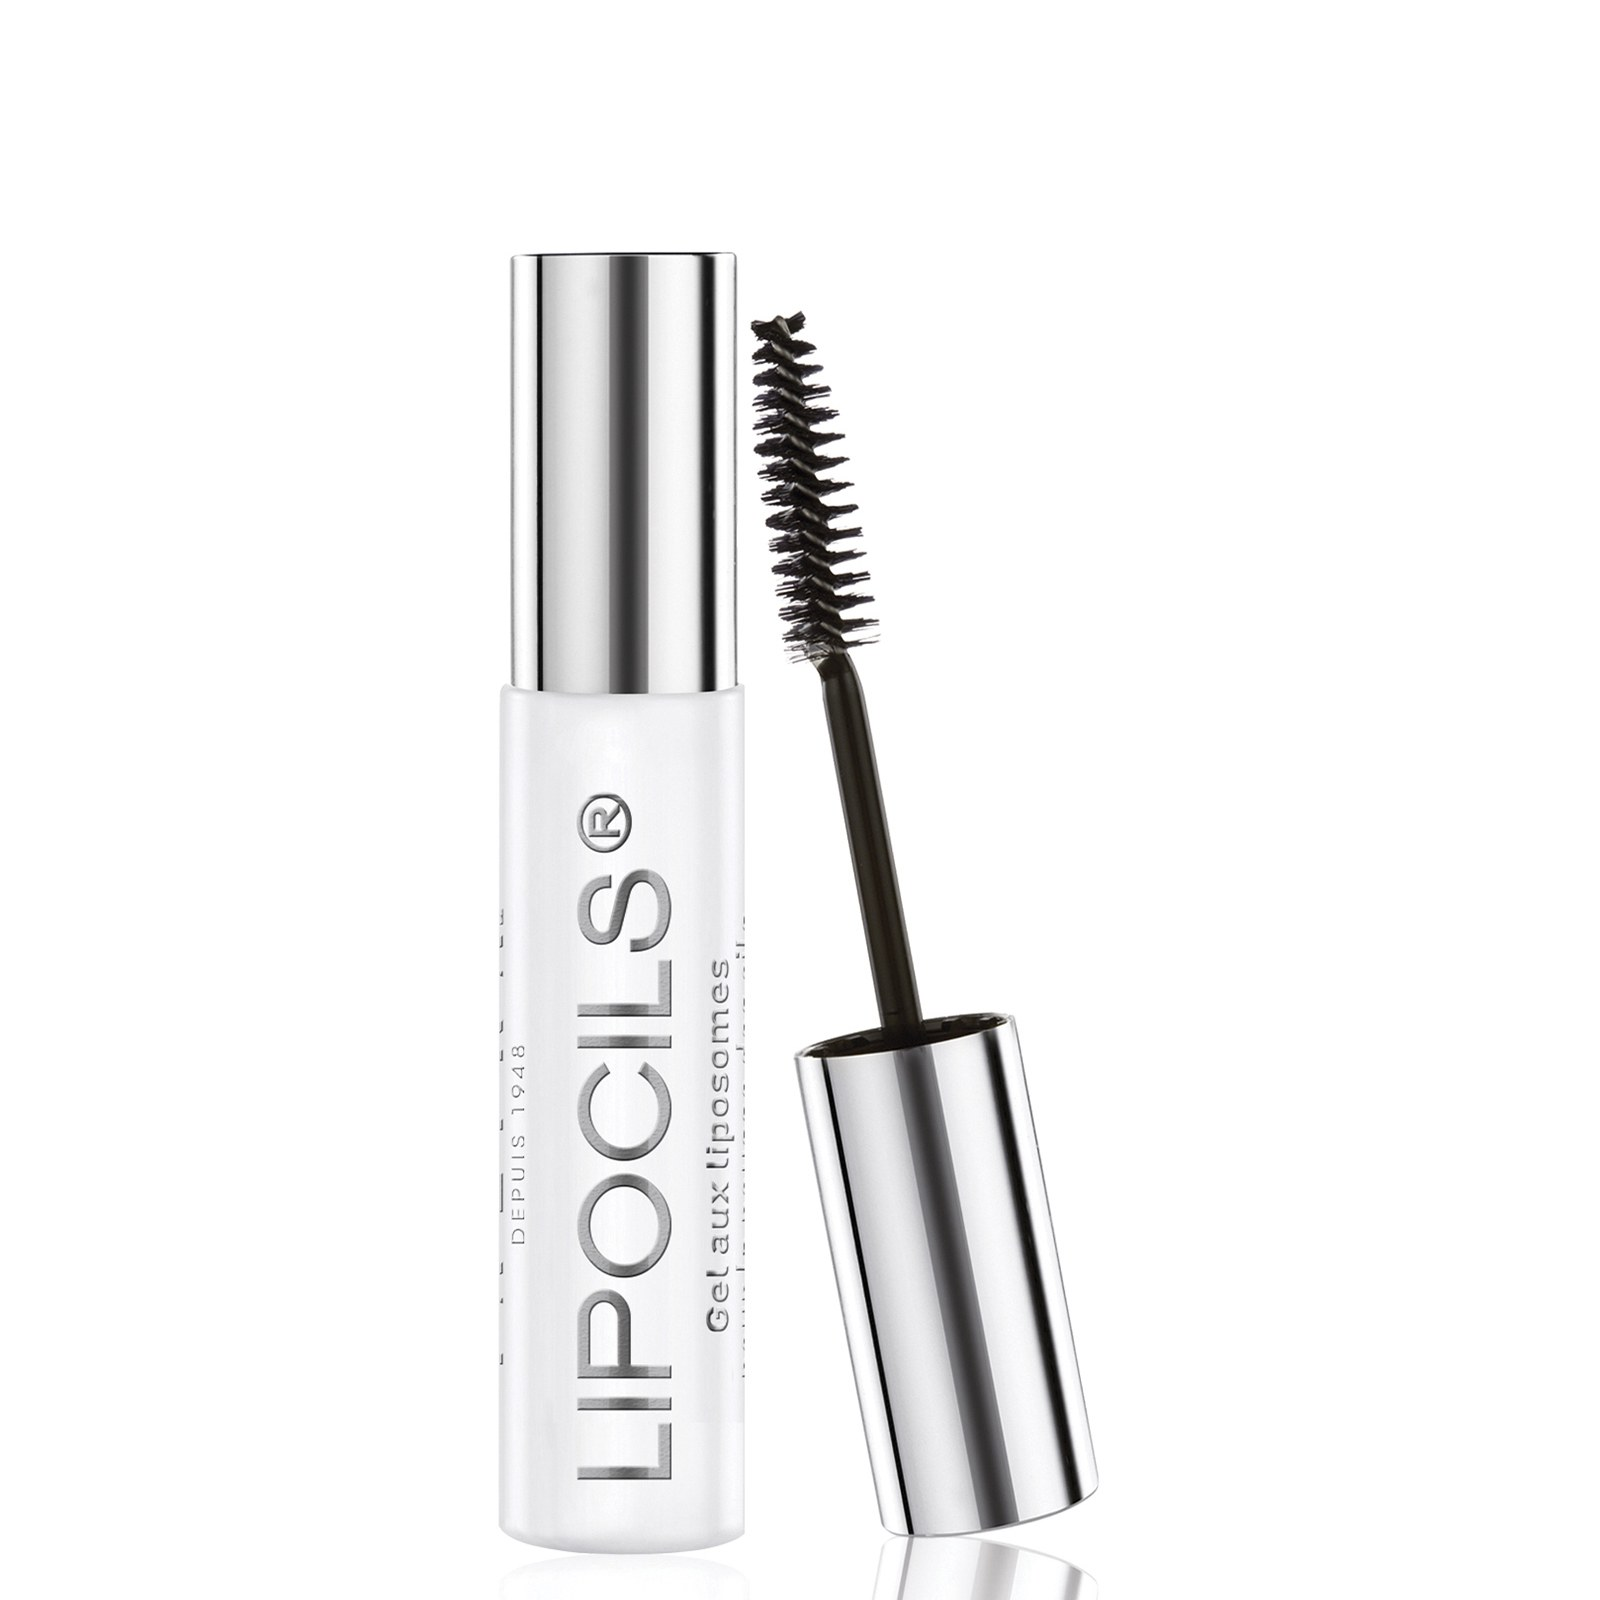 Lipocils Eyelash Conditioning Gel